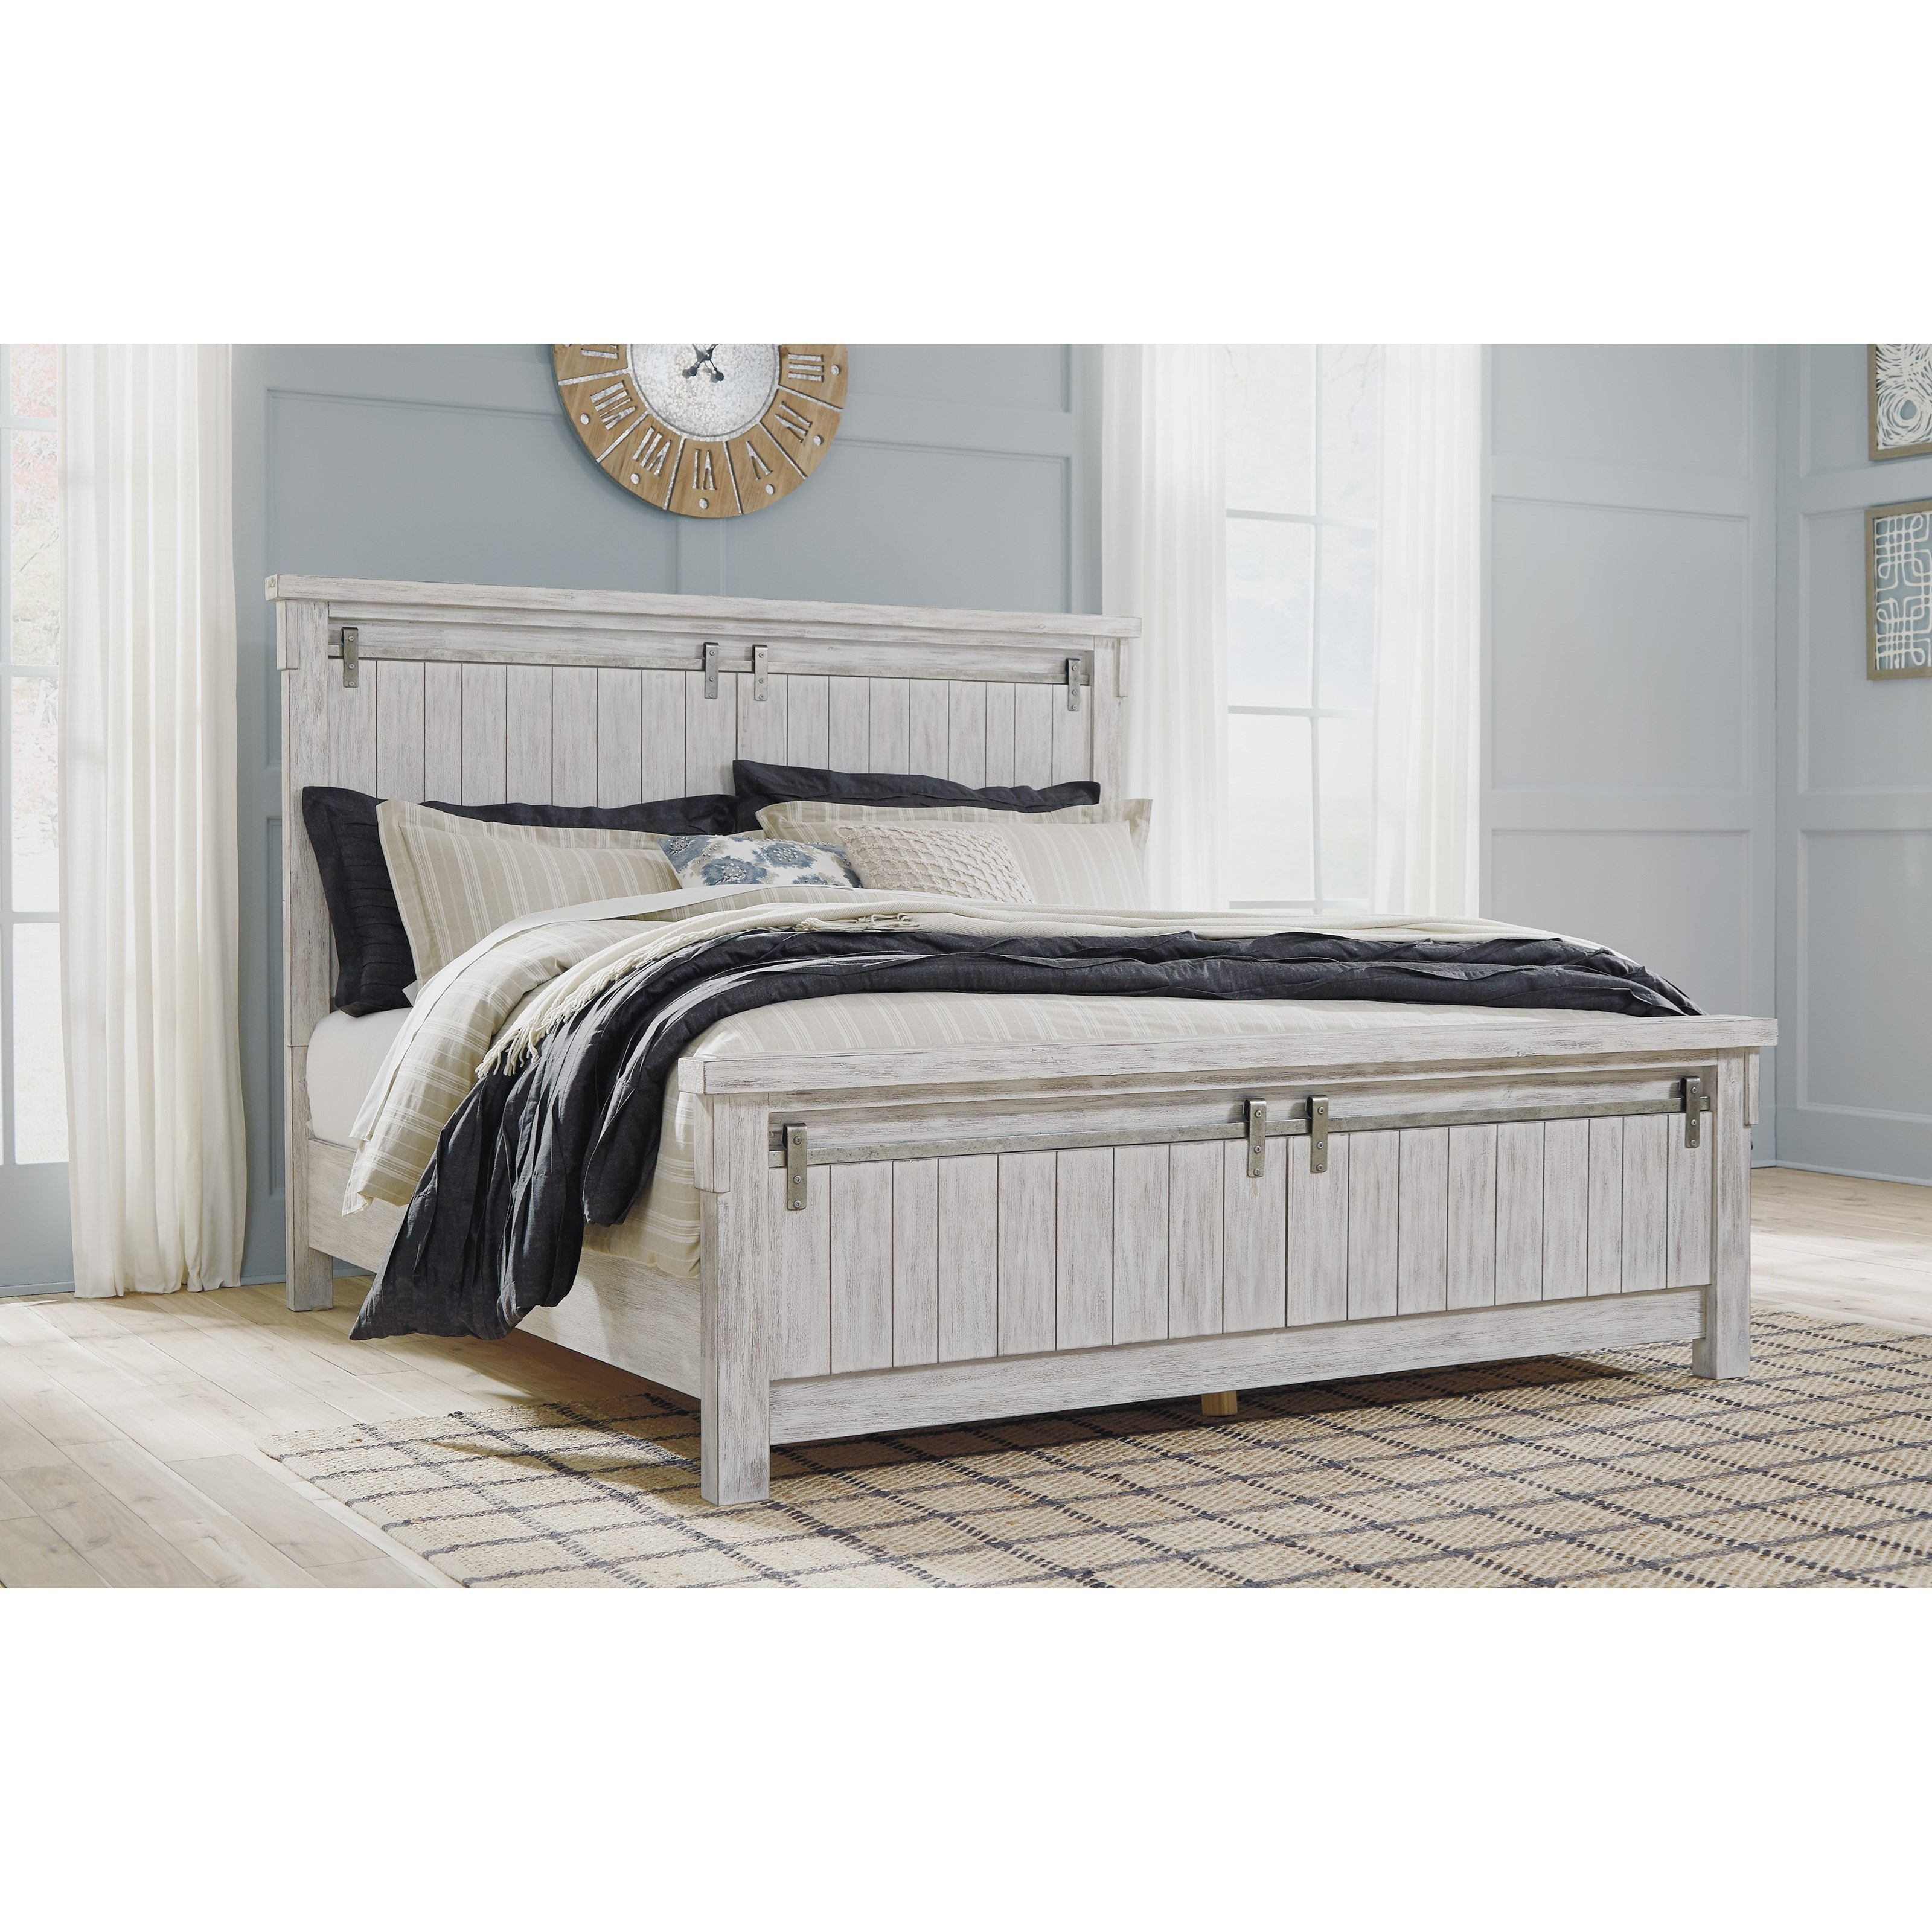 Brashland King Panel Bed by Signature Design by Ashley at Standard Furniture